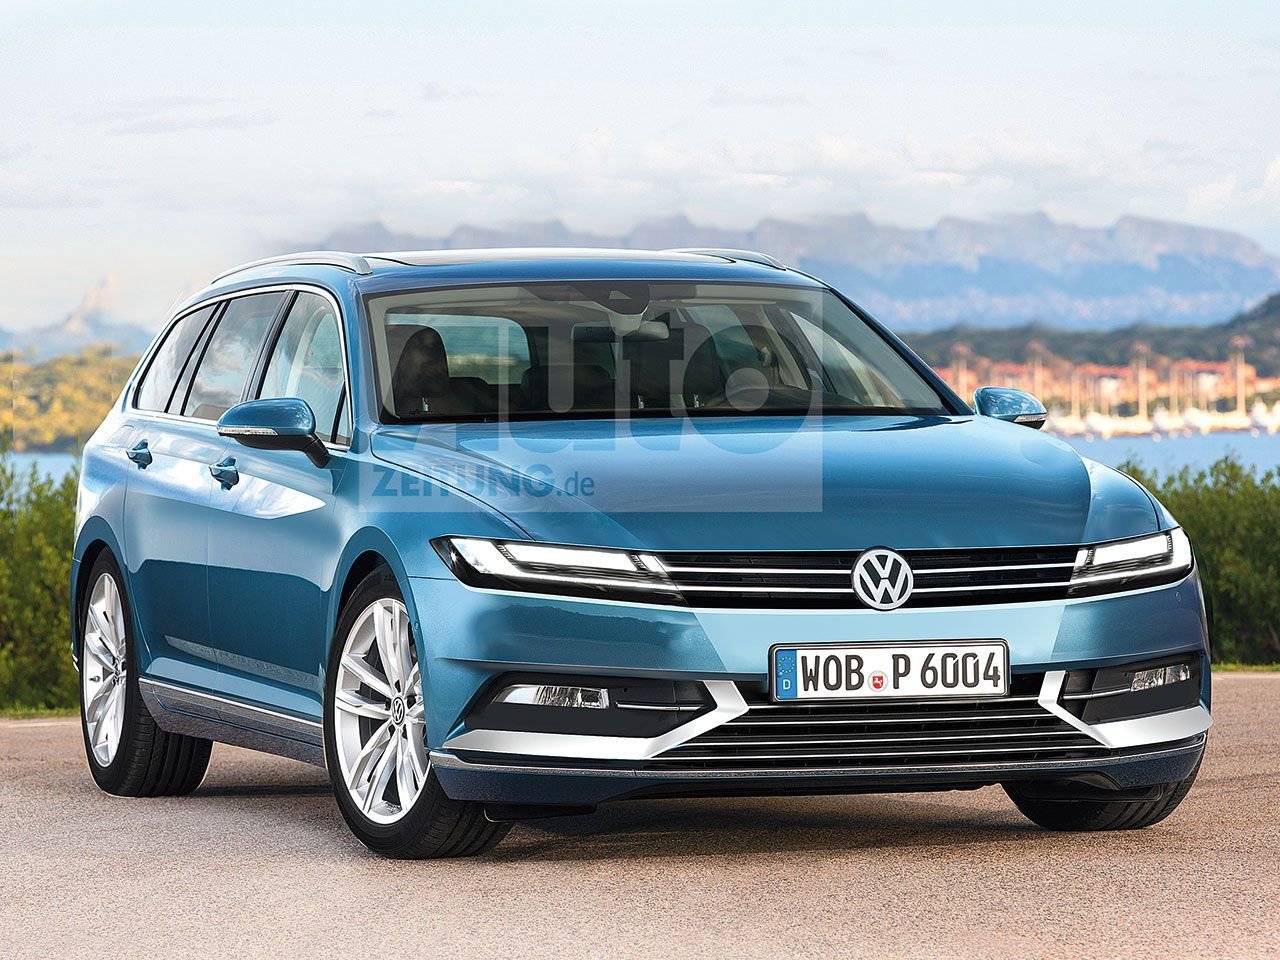 2021 Volkswagen Passat Trim Levels Performance and New Engine